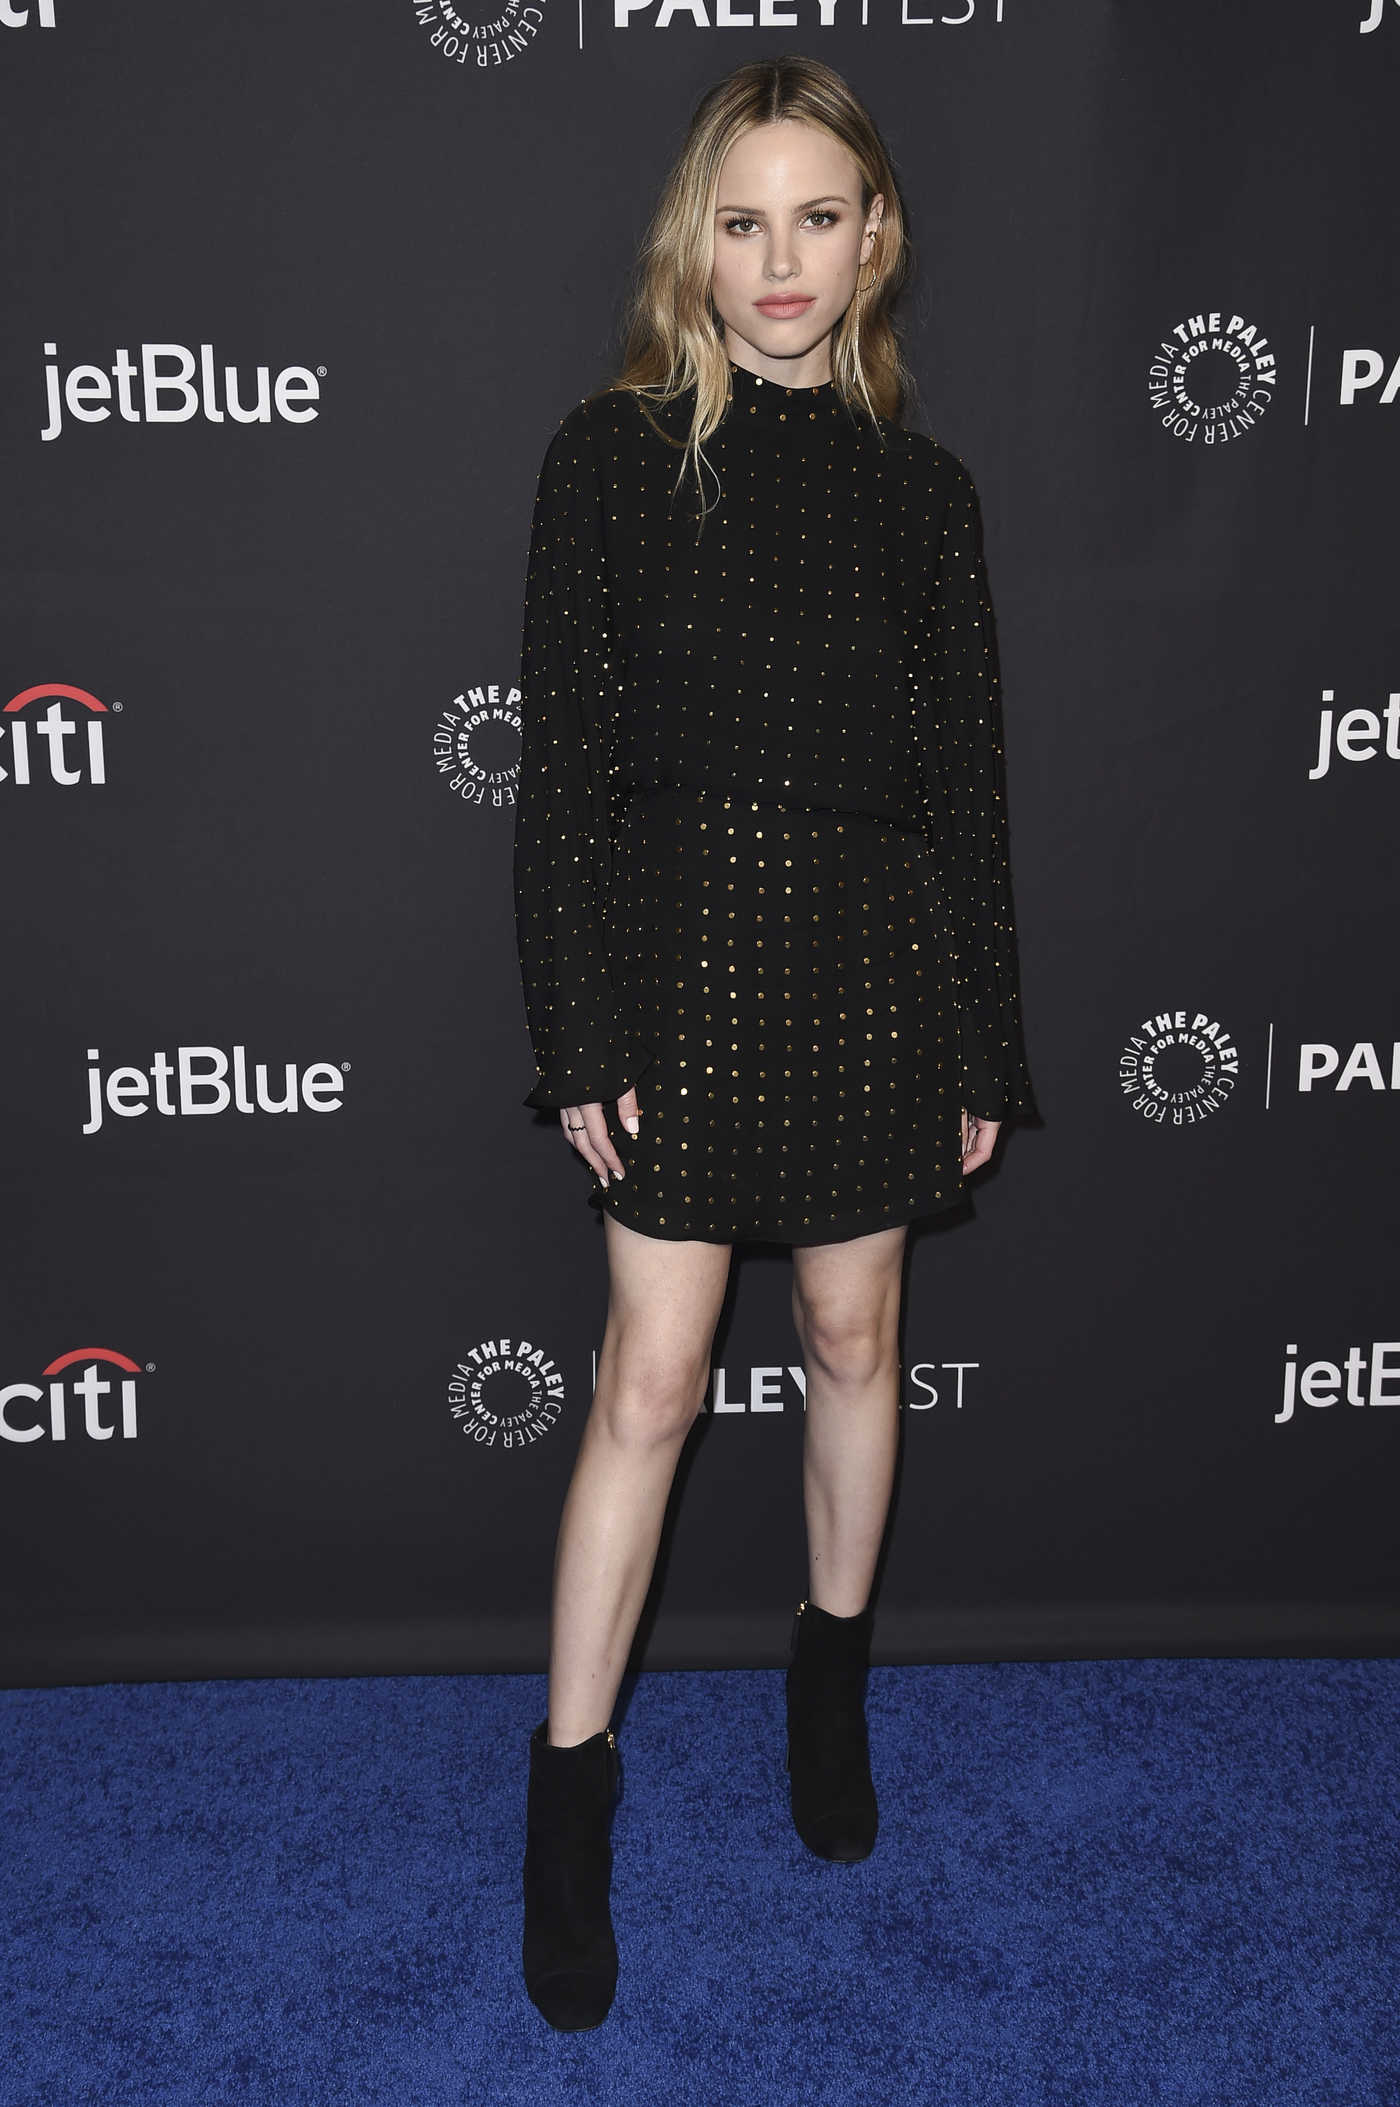 Halston Sage at The Orville Screening for Media's 35th Annual PaleyFest in Los Angeles 03/17/2018